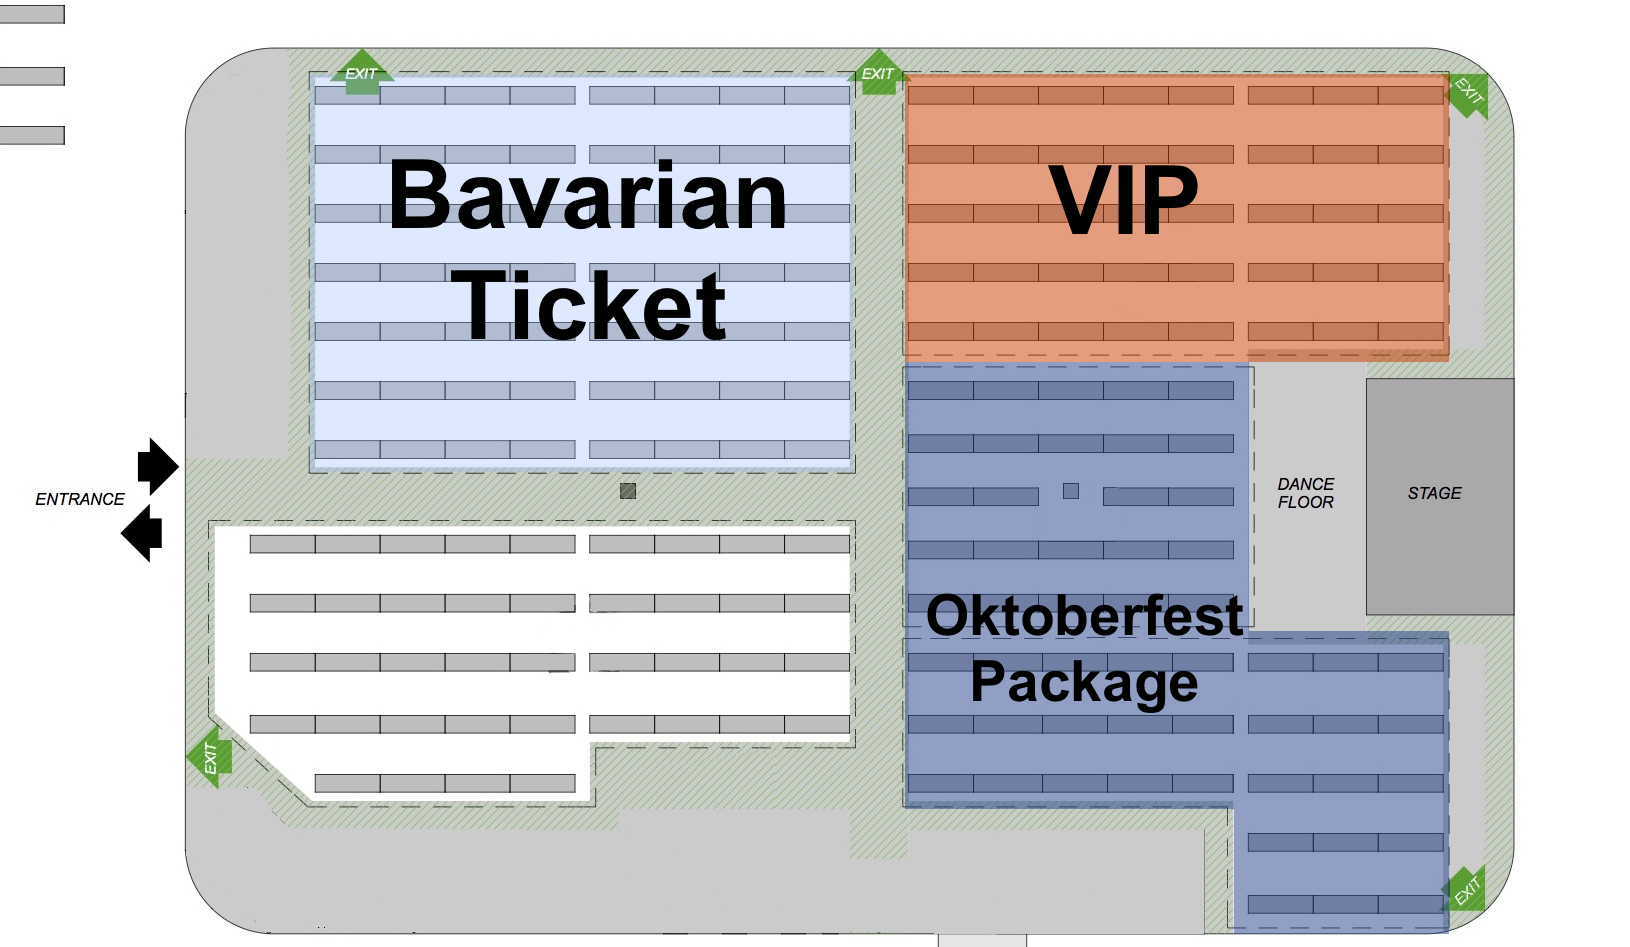 London Oktoberfest floor plan